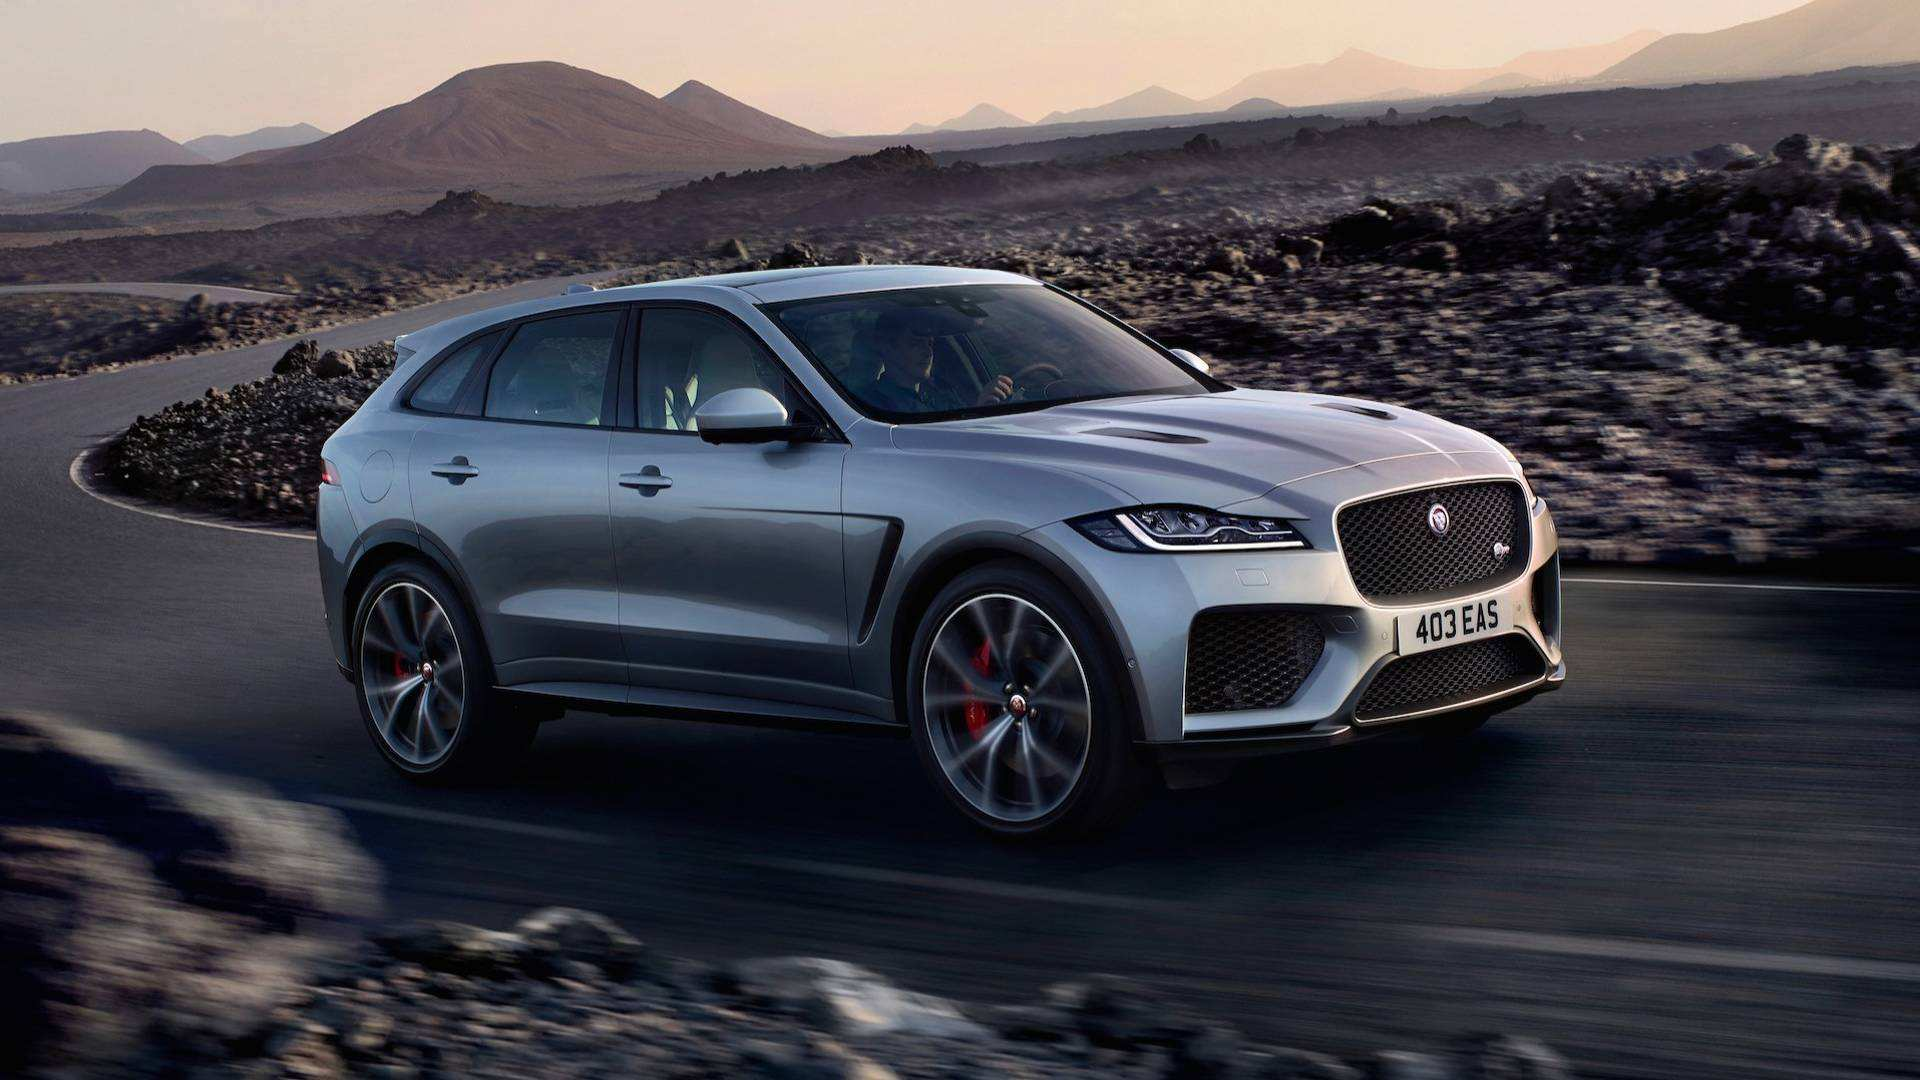 20 A 2020 Jaguar Suv Ratings